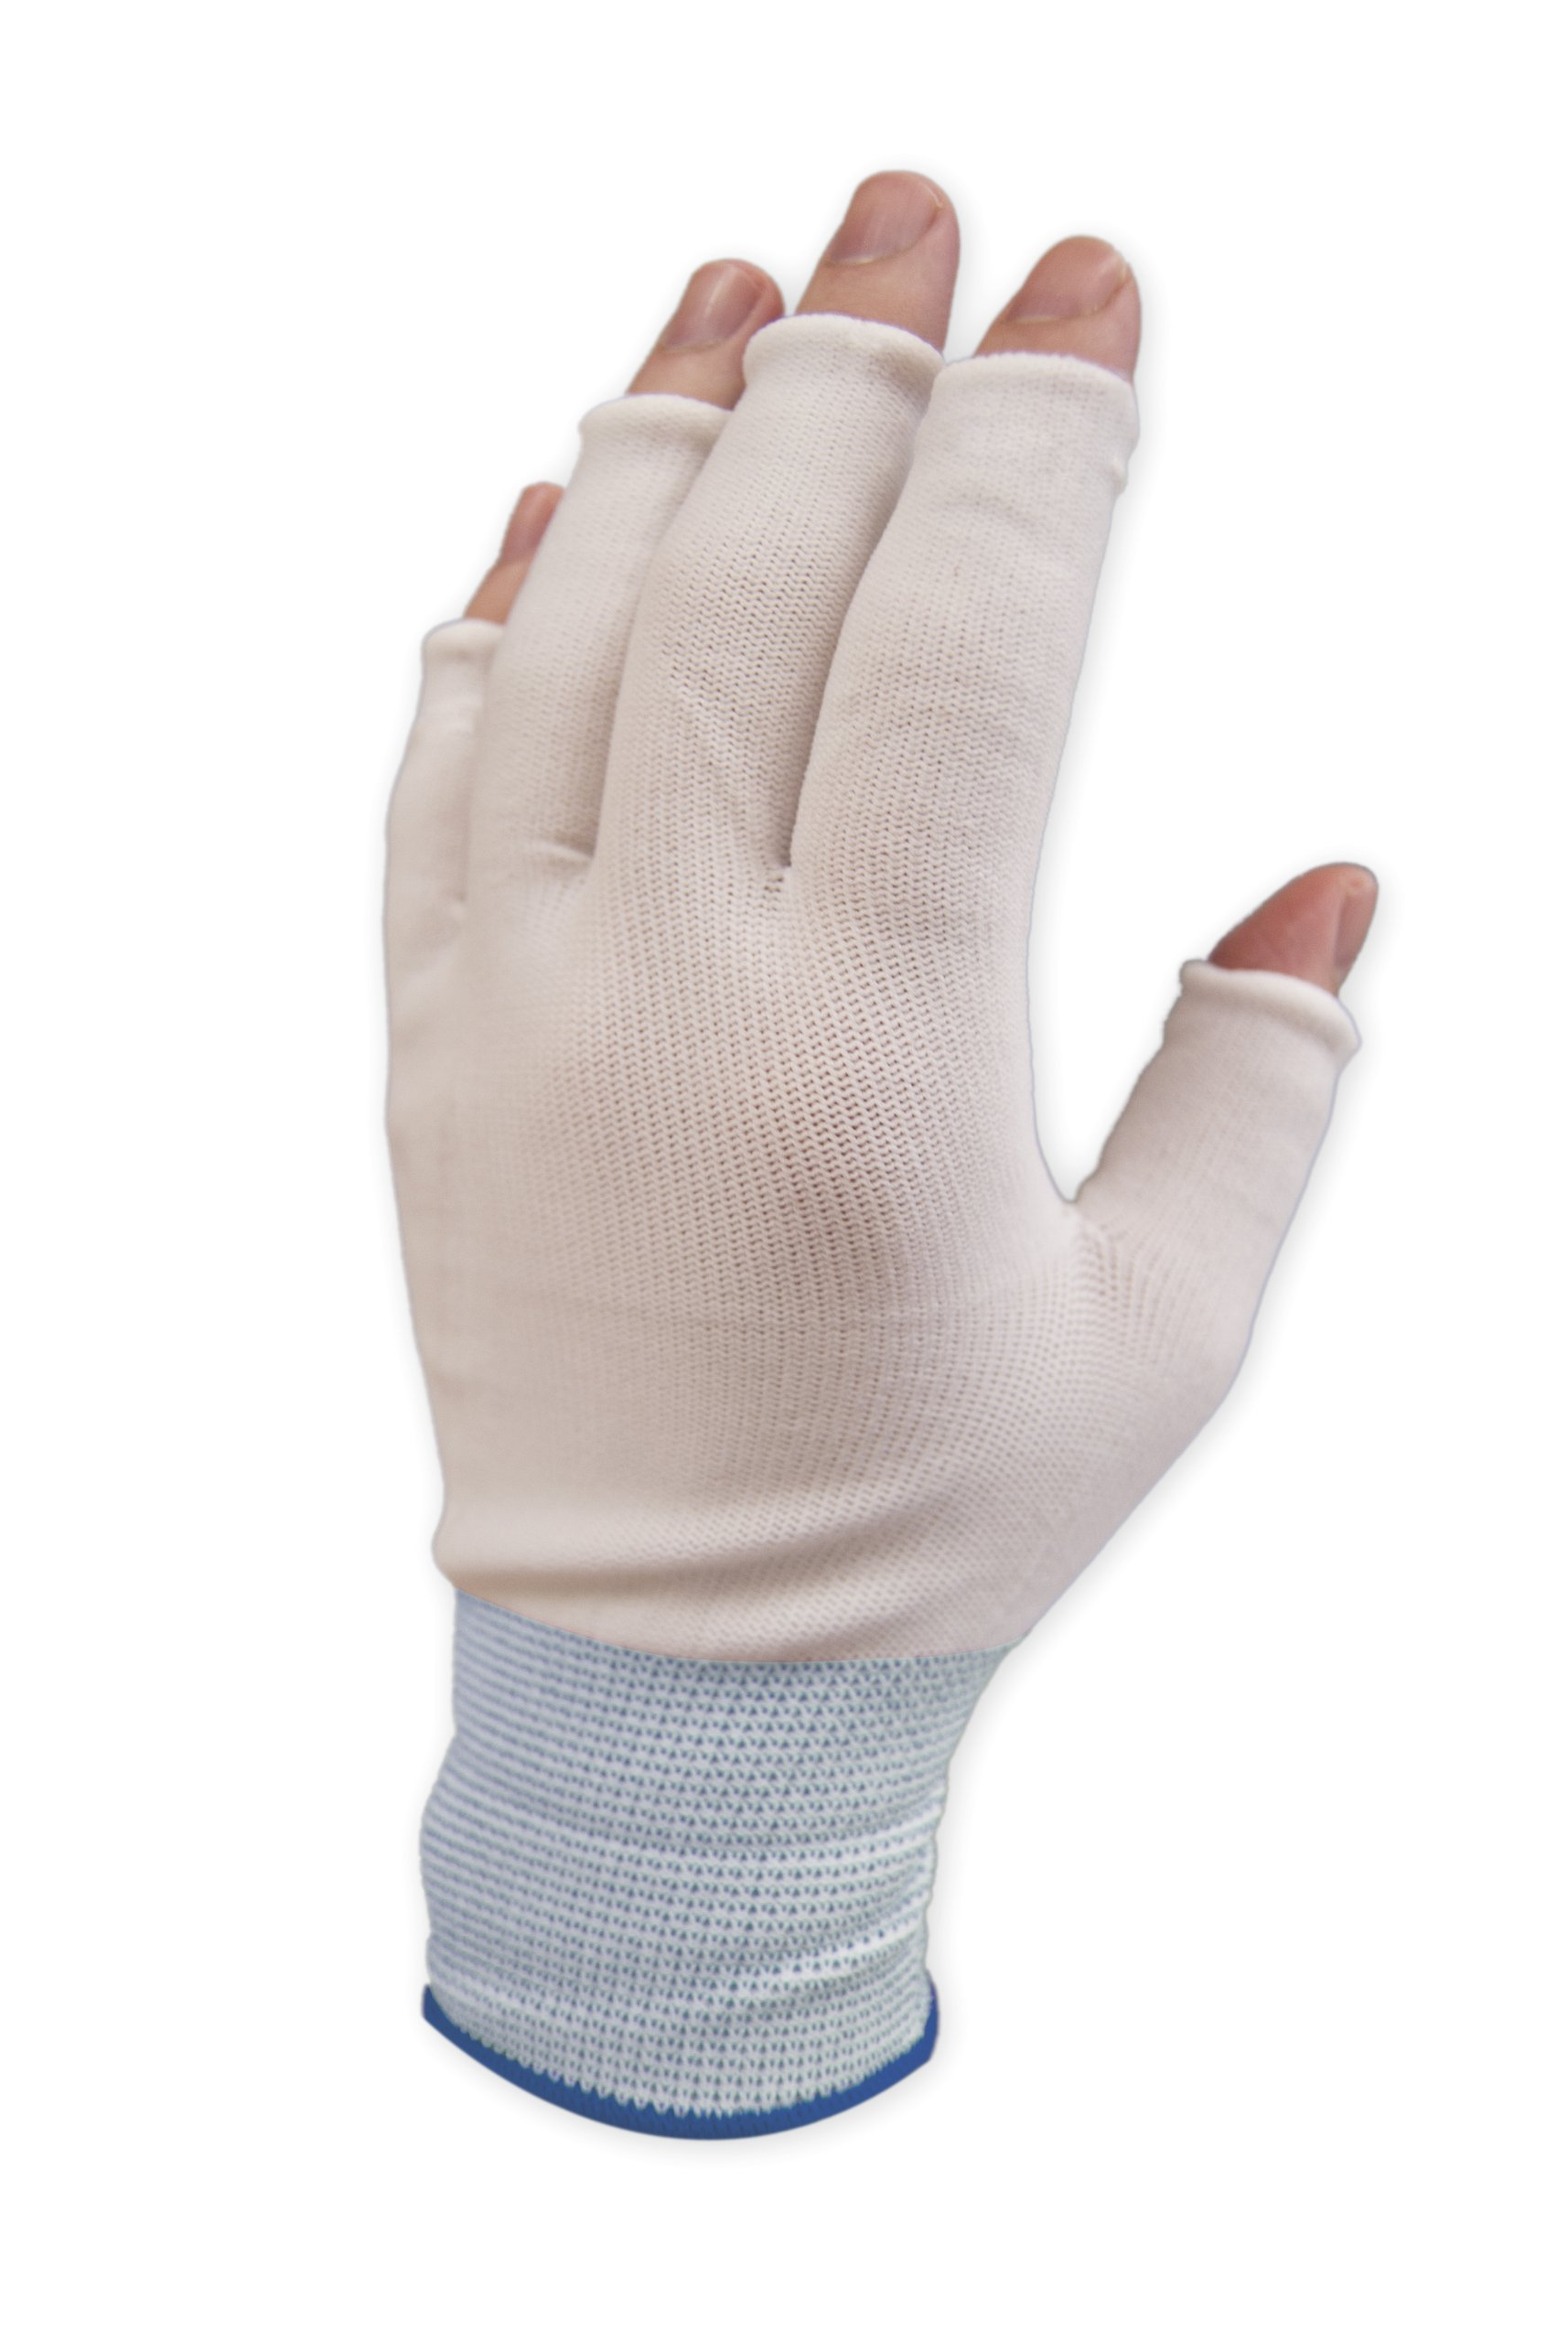 Purus GLHF-L Nylon Half Finger Knit Glove Liner Cuff, 1.7 Mils Thick, Large (Pack of 300 Pairs)